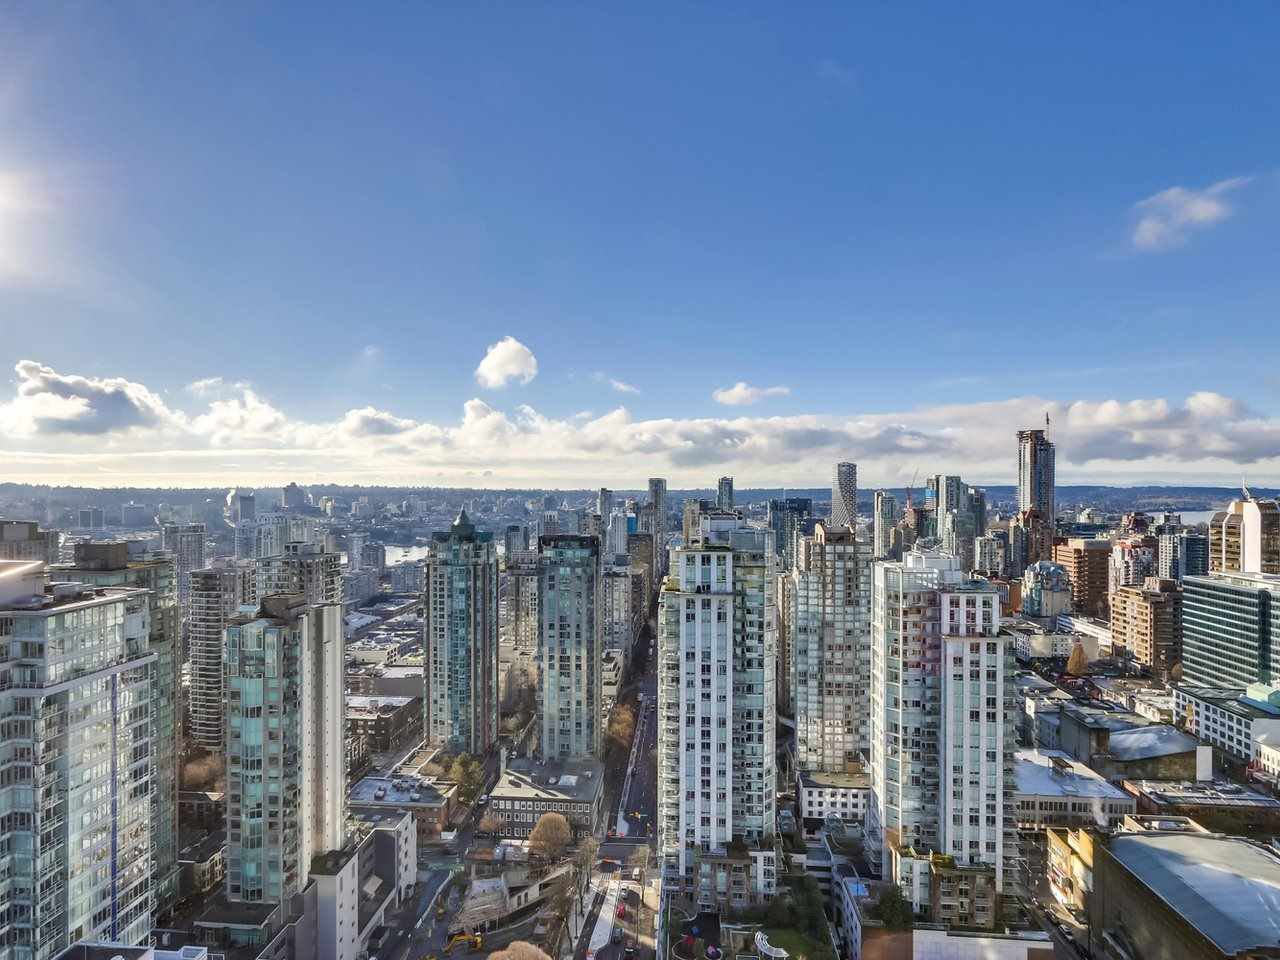 Main Photo: 4009 777 RICHARDS Street in Vancouver: Downtown VW Condo for sale (Vancouver West)  : MLS®# R2524864